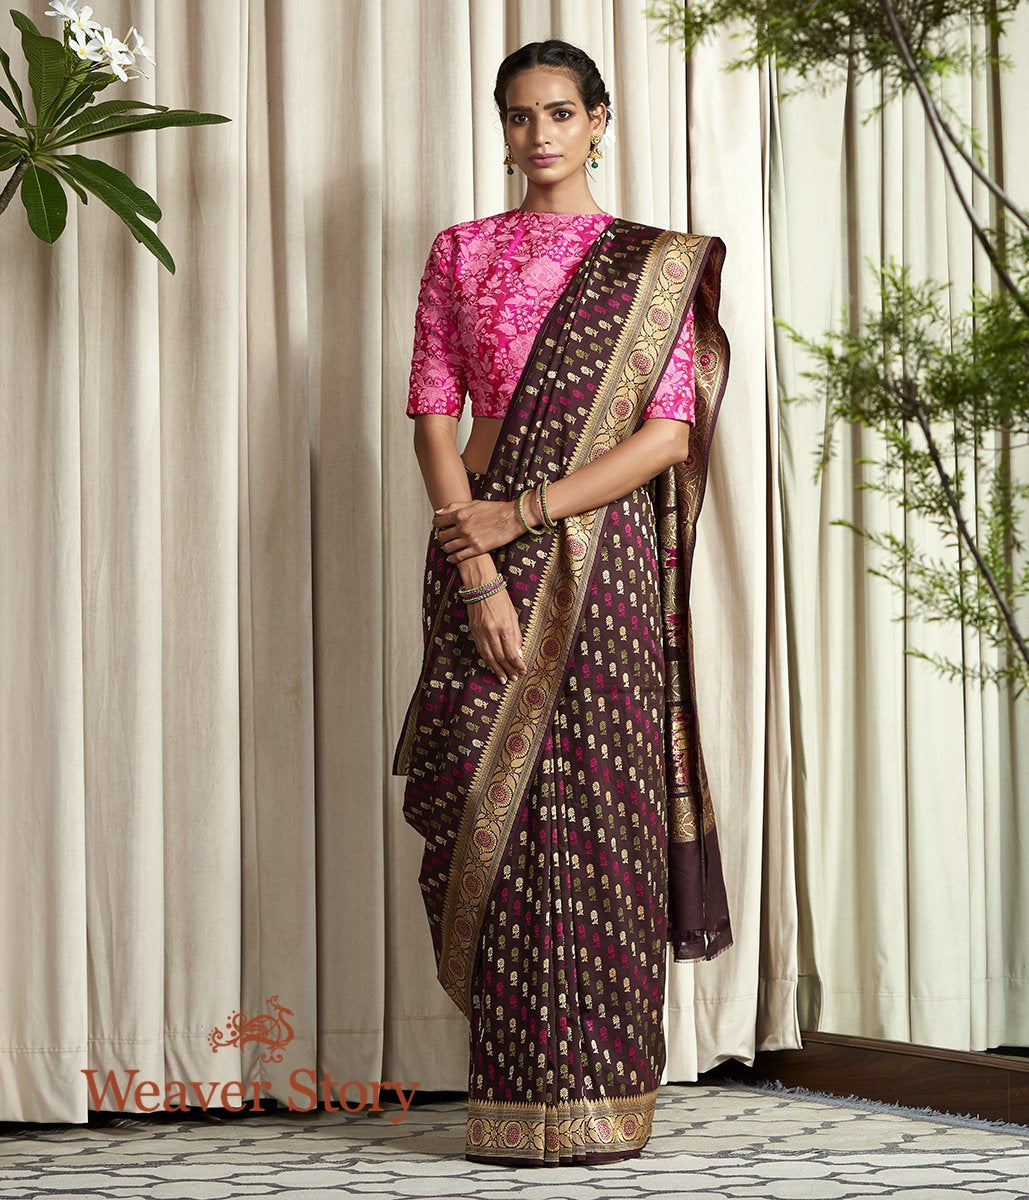 Handwoven Brown Hand Spun Cotton Silk Baluchari Saree with Small Booti